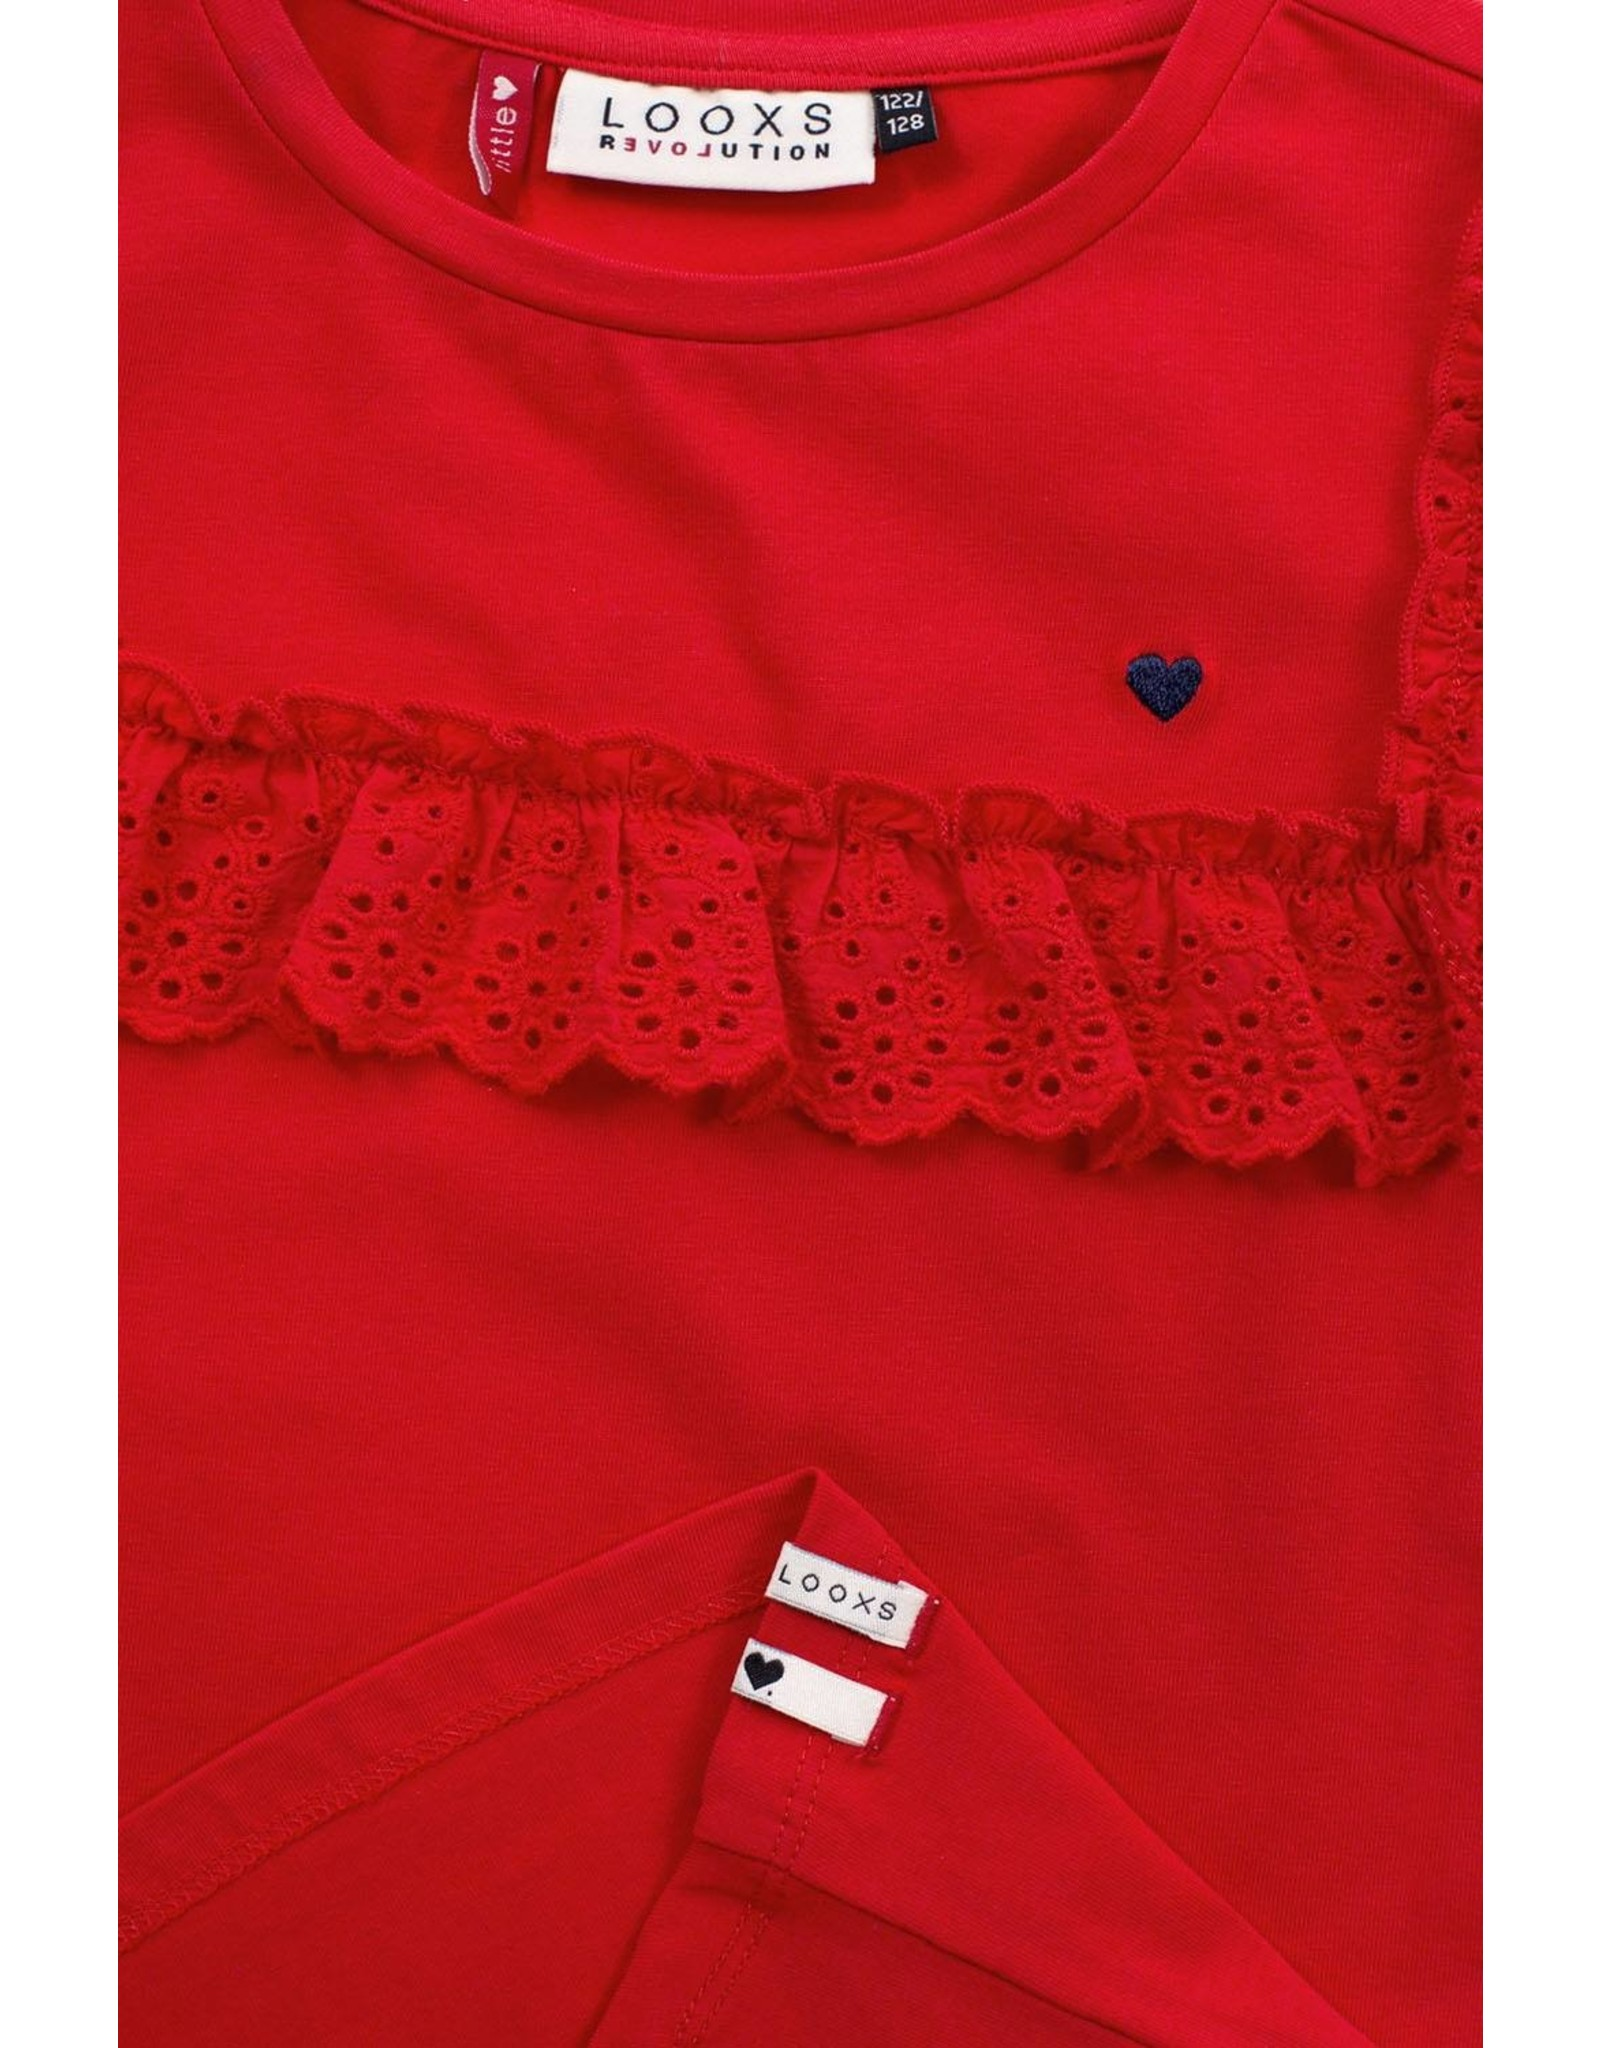 Looxs Little Little t-shirt s. sleeve red apple